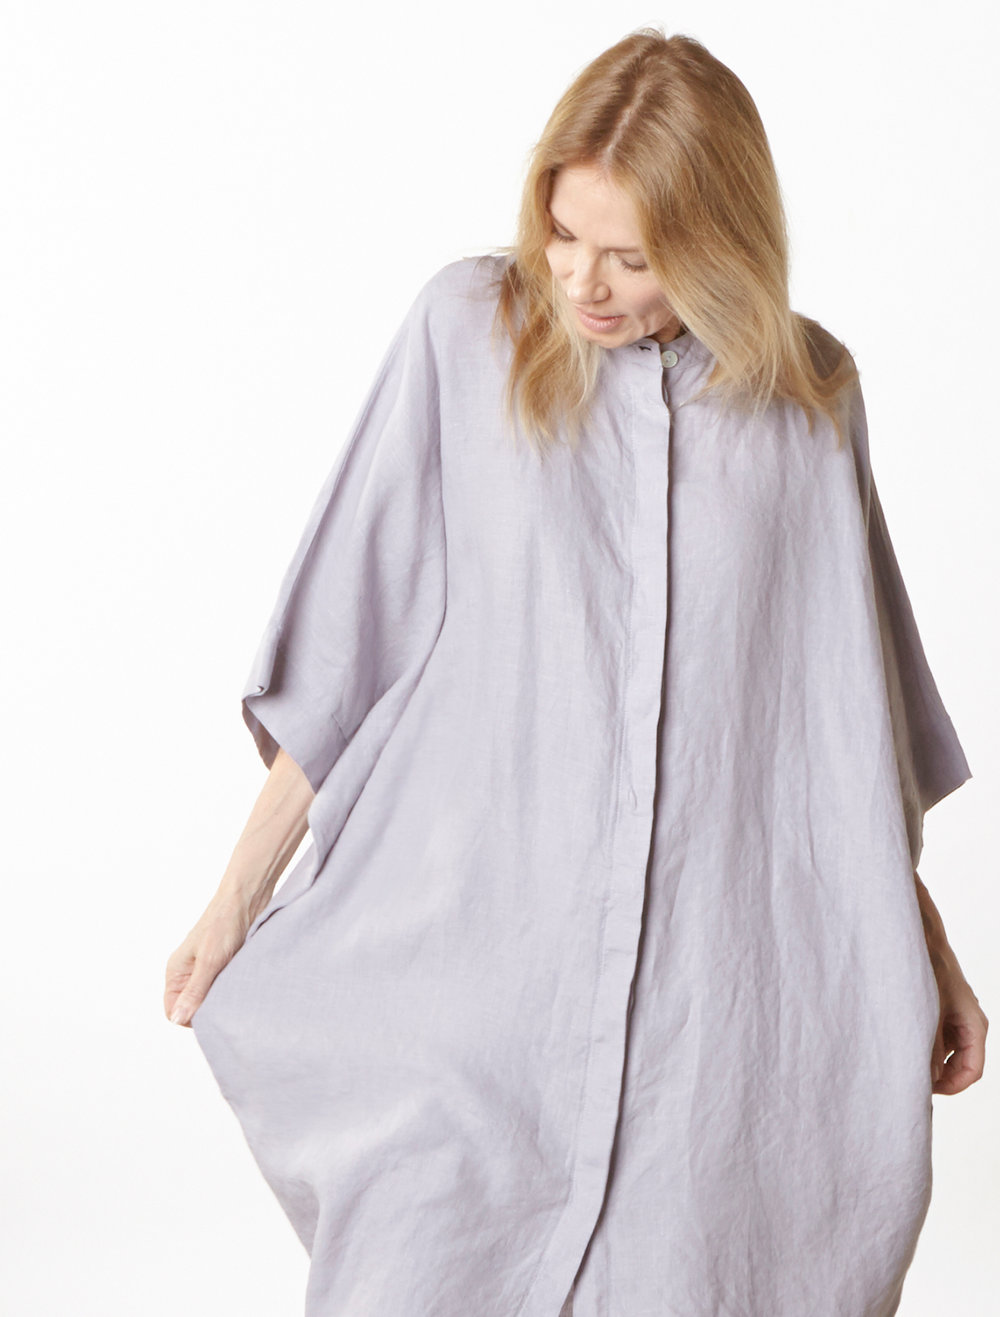 Jacoba Tunic in Dapple Light Linen